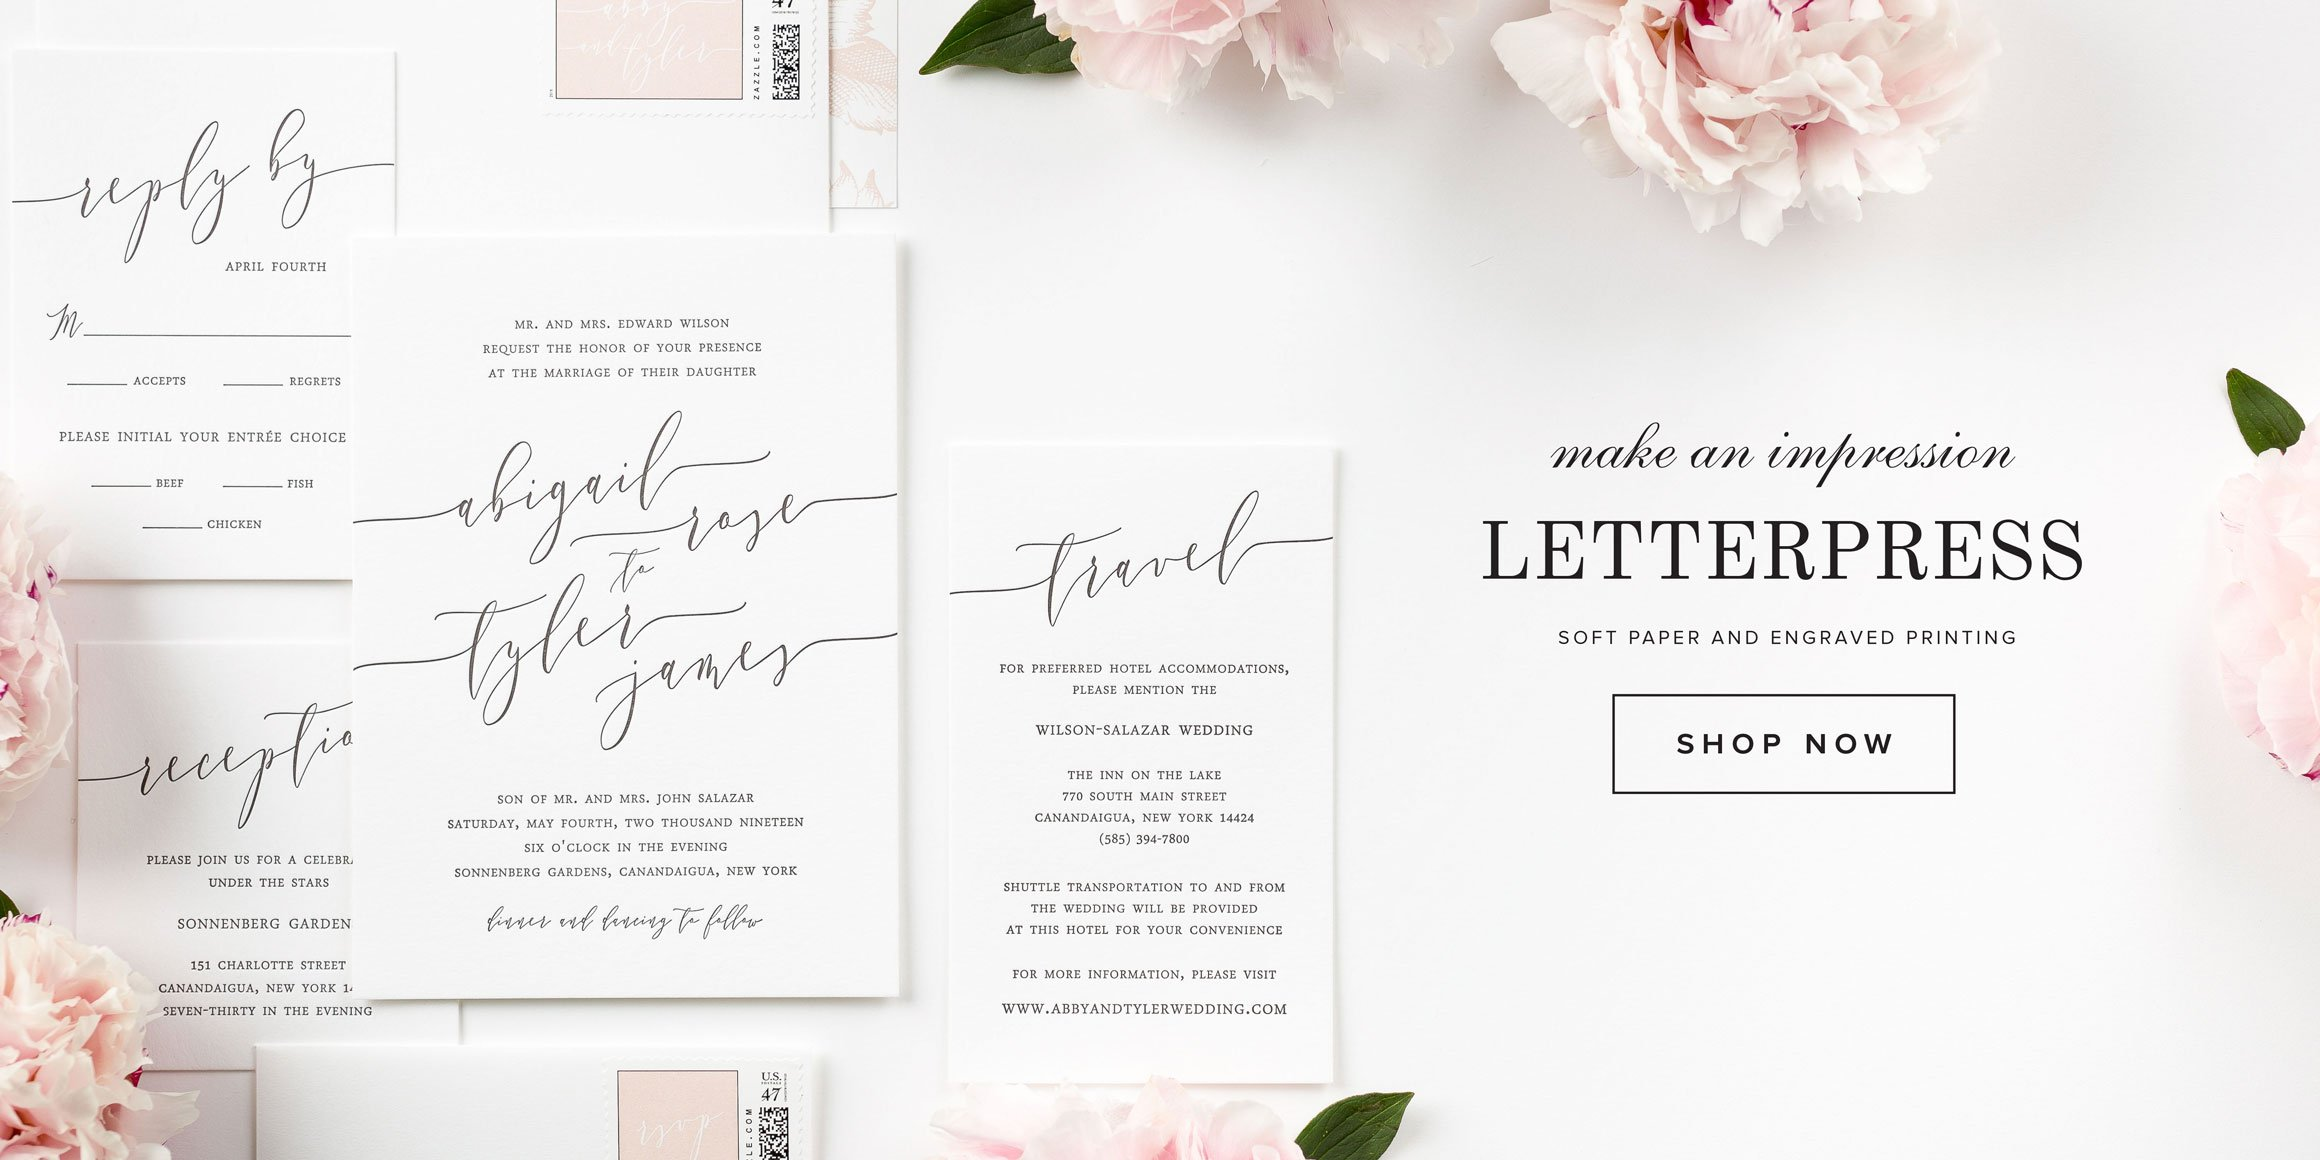 wedding invitations | modern wedding invitations, wedding programs, Wedding invitations